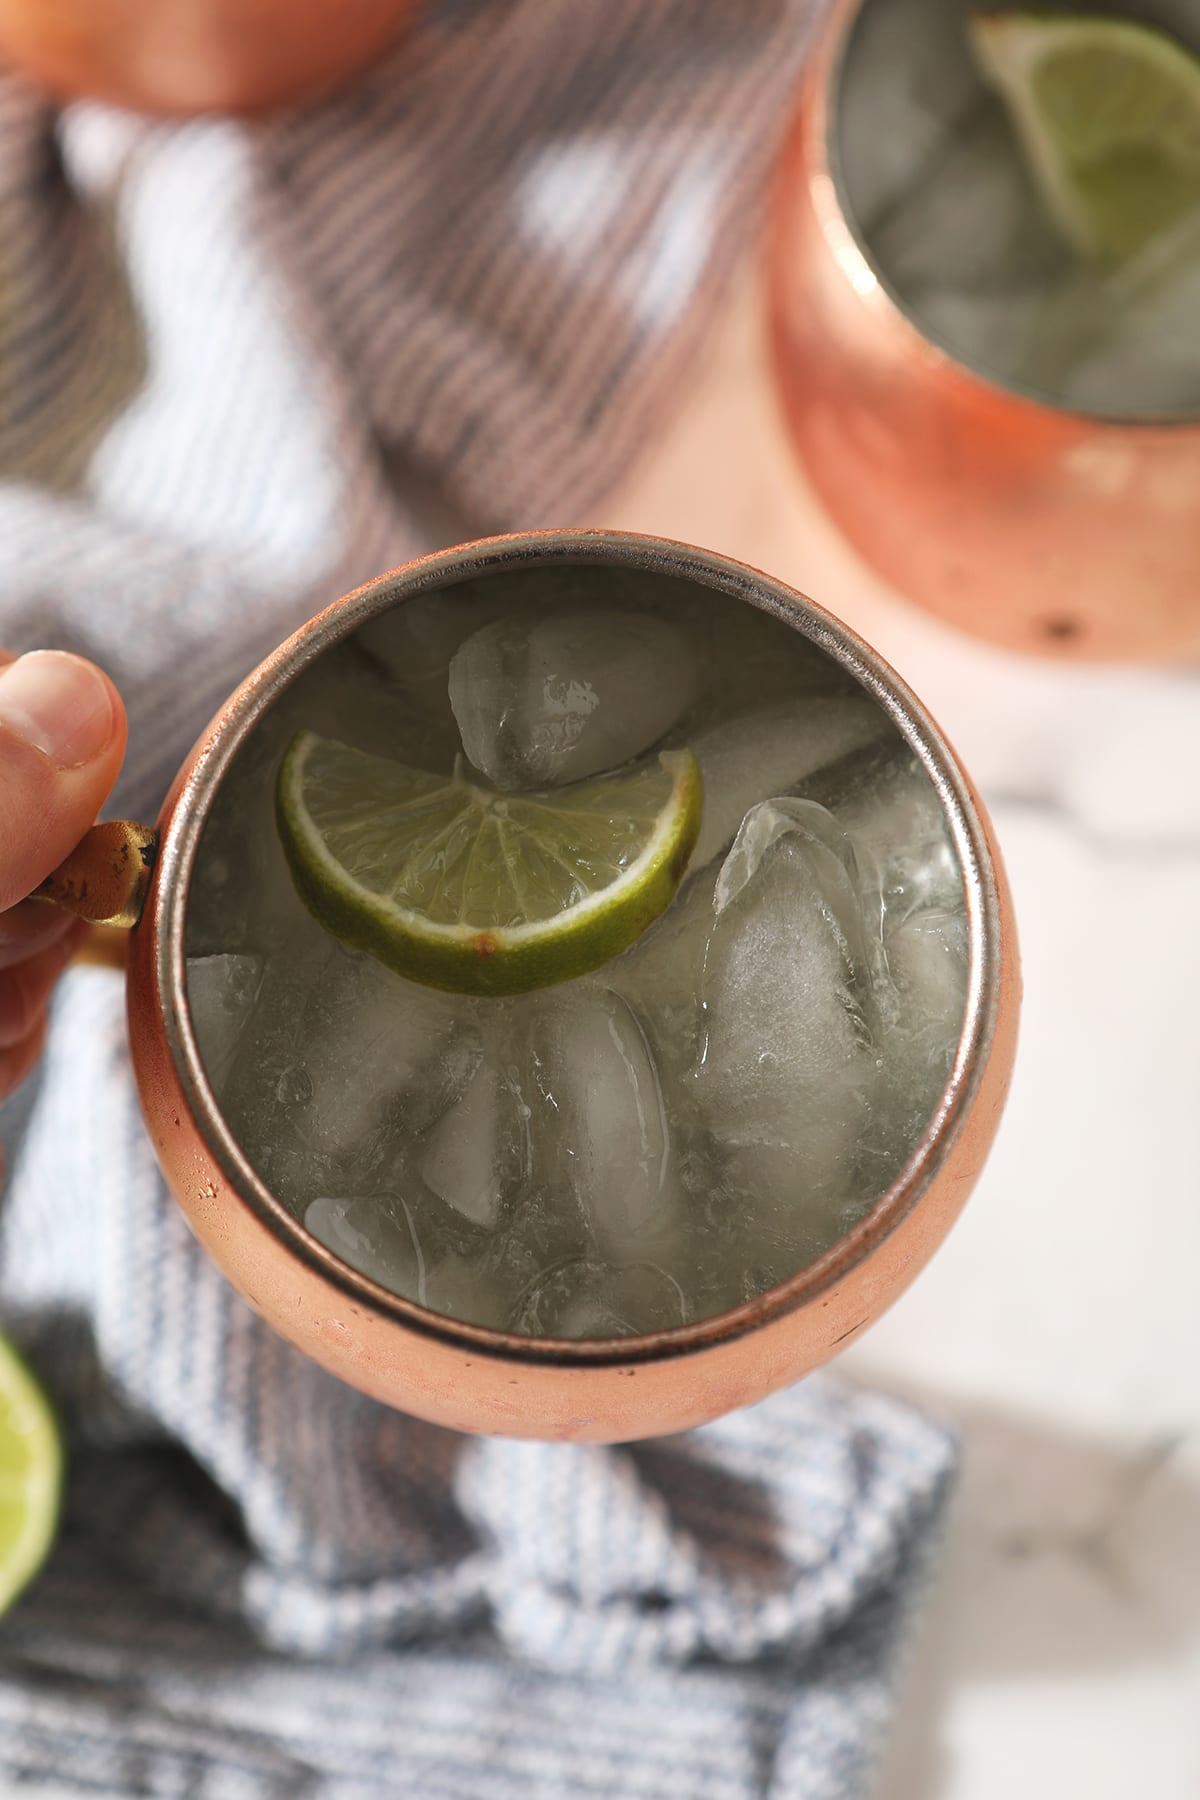 Close up of a Moscow mule inside a copper mug behind held above a blue striped towel